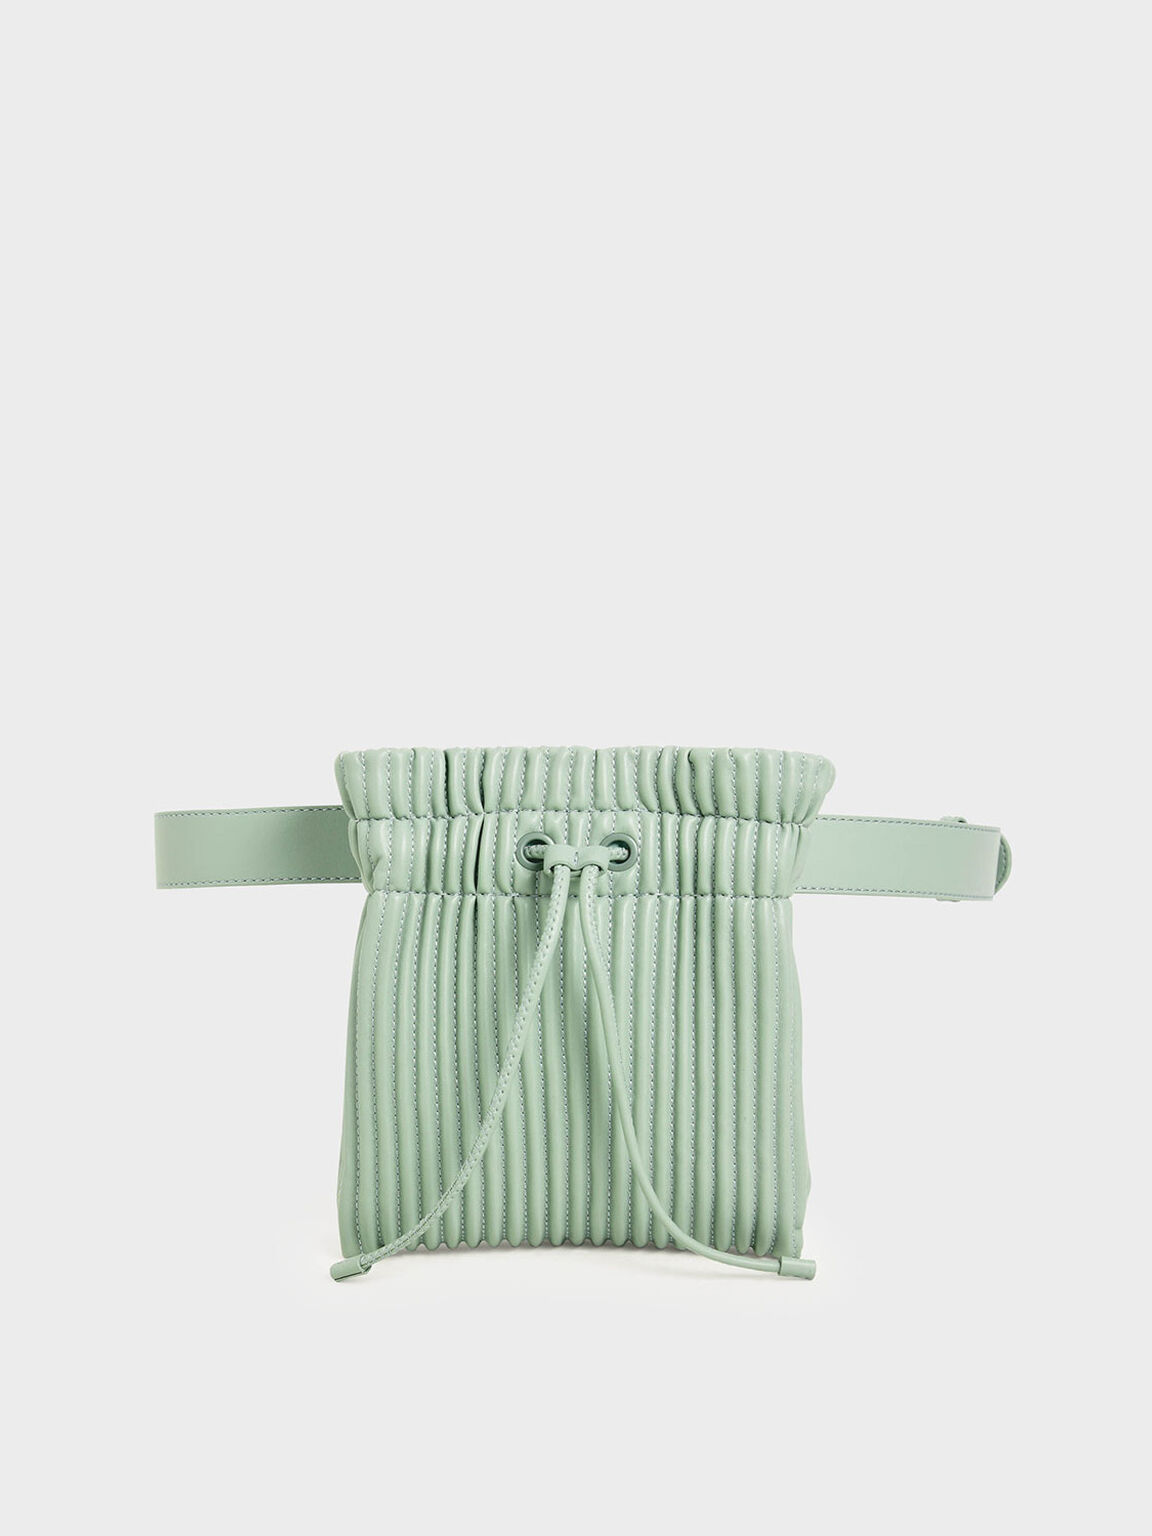 Textured Drawstring Belt Bag, Mint Green, hi-res